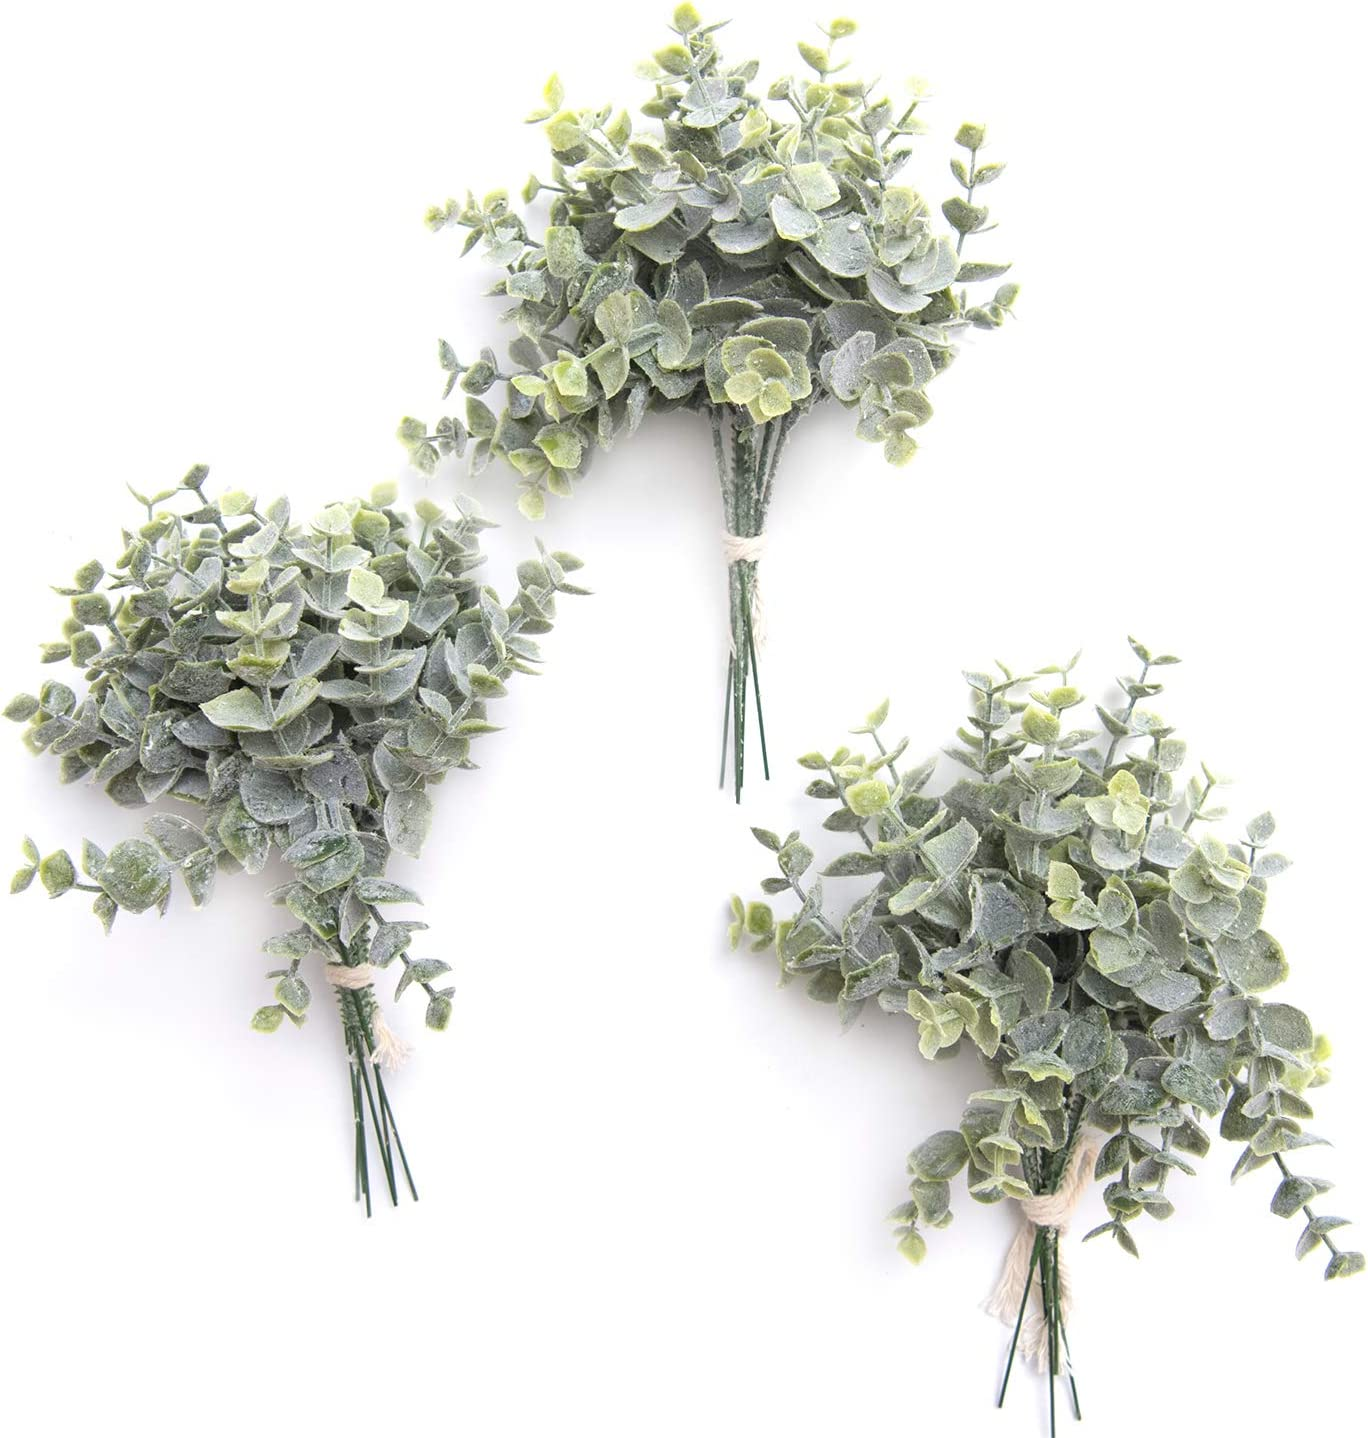 Ling's moment Artificial Greenery Spray Box Set for DIY Wedding Bouquet and Table Centerpieces Arrangement Decoration (Single Type, 0 Flocking Eucalyptus)